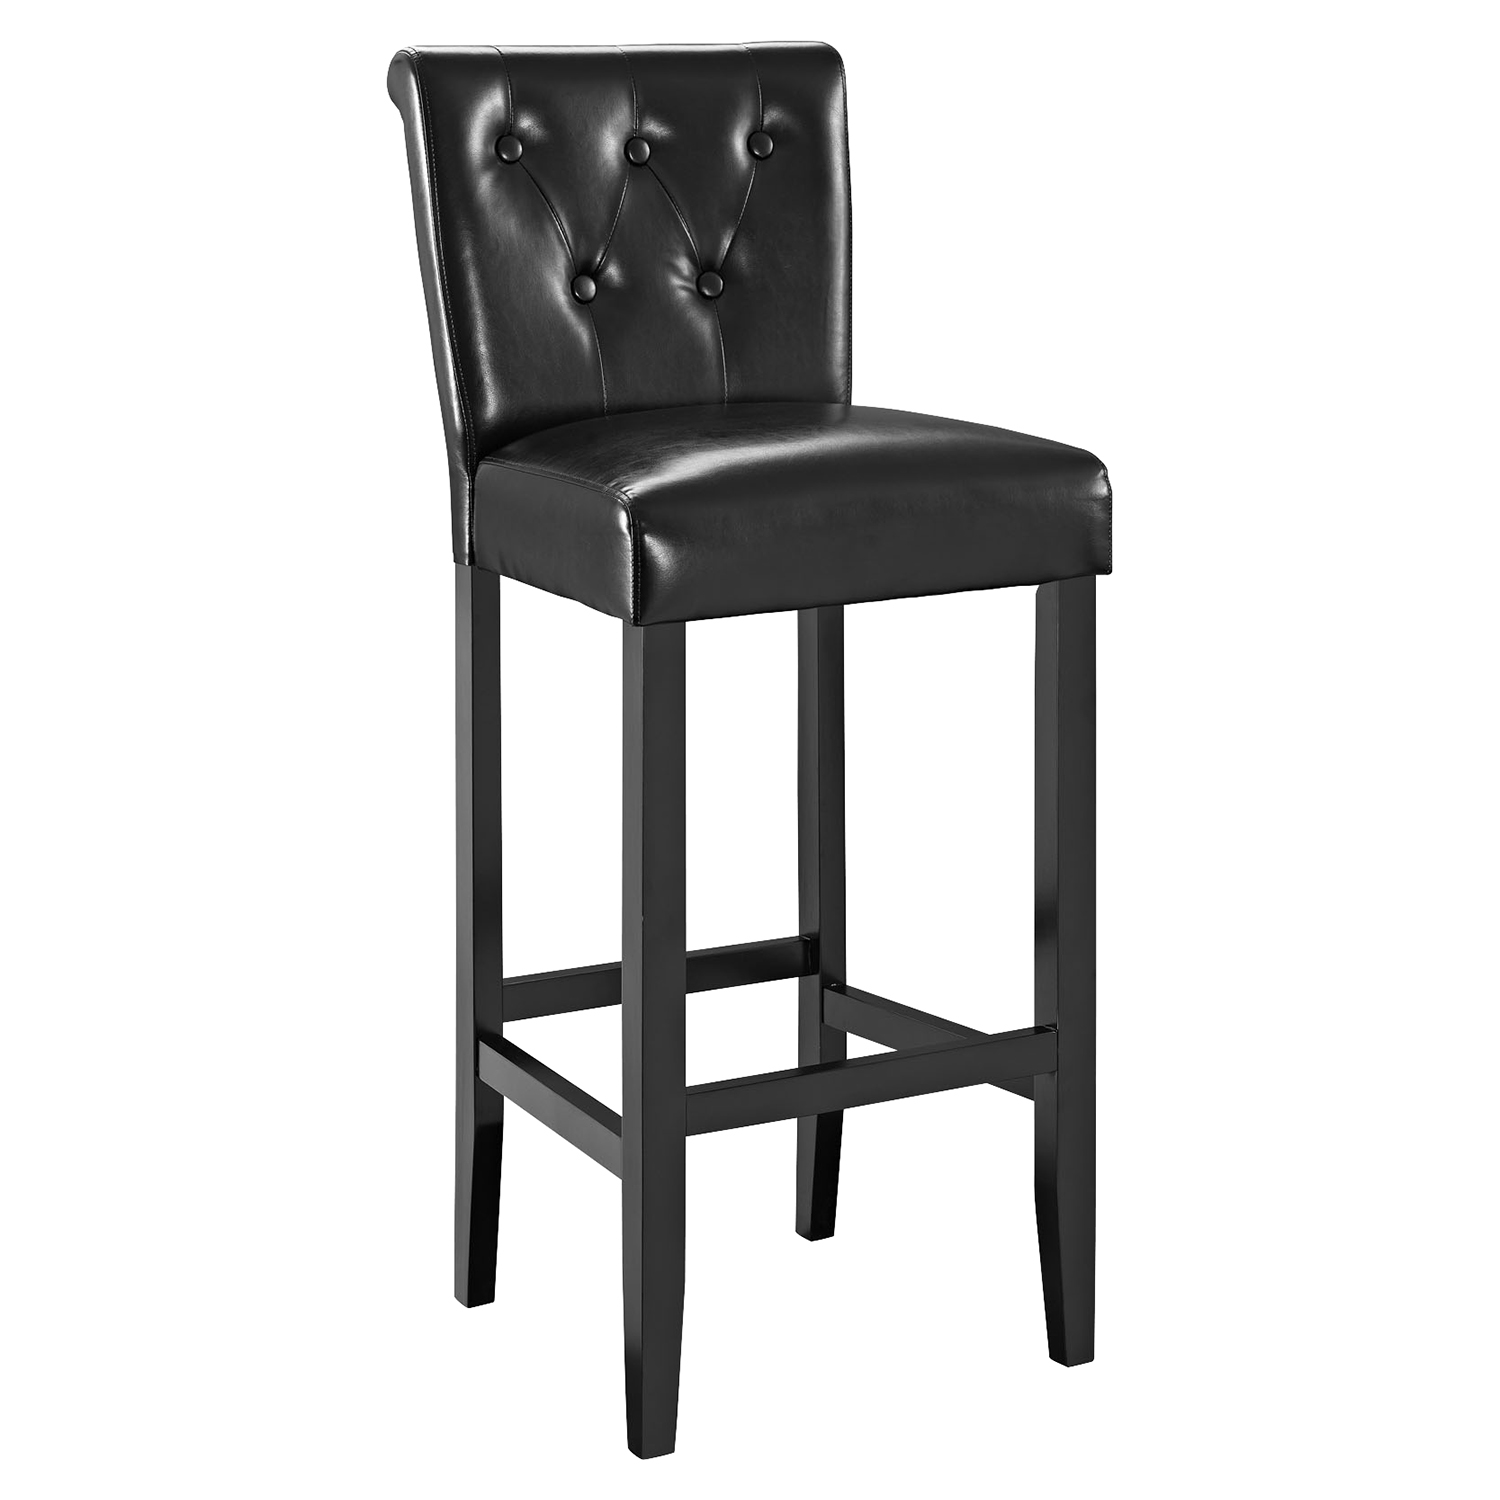 Tender Backrest Bar Stool - Button Tufted, Black - EEI-1415-BLK